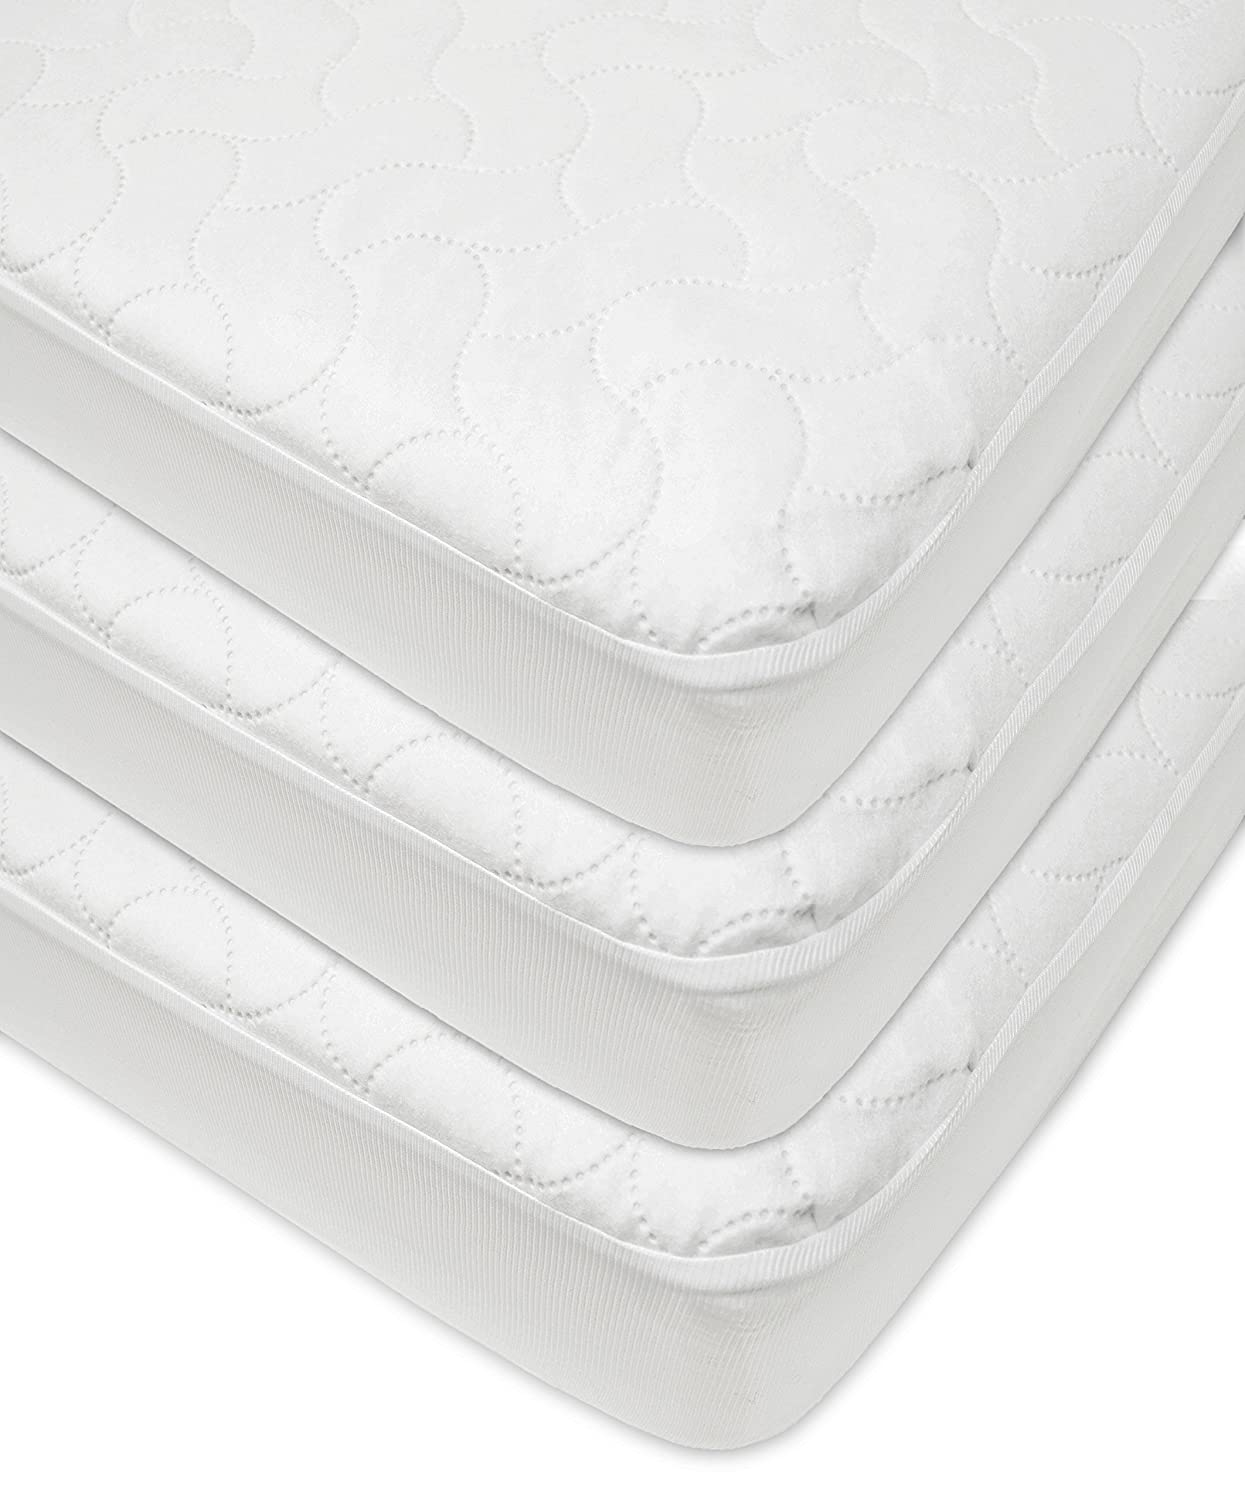 White 3 Pack for Boys and Girls American Baby Company Waterproof Fitted Quilted Crib and Toddler Protective Pad Cover